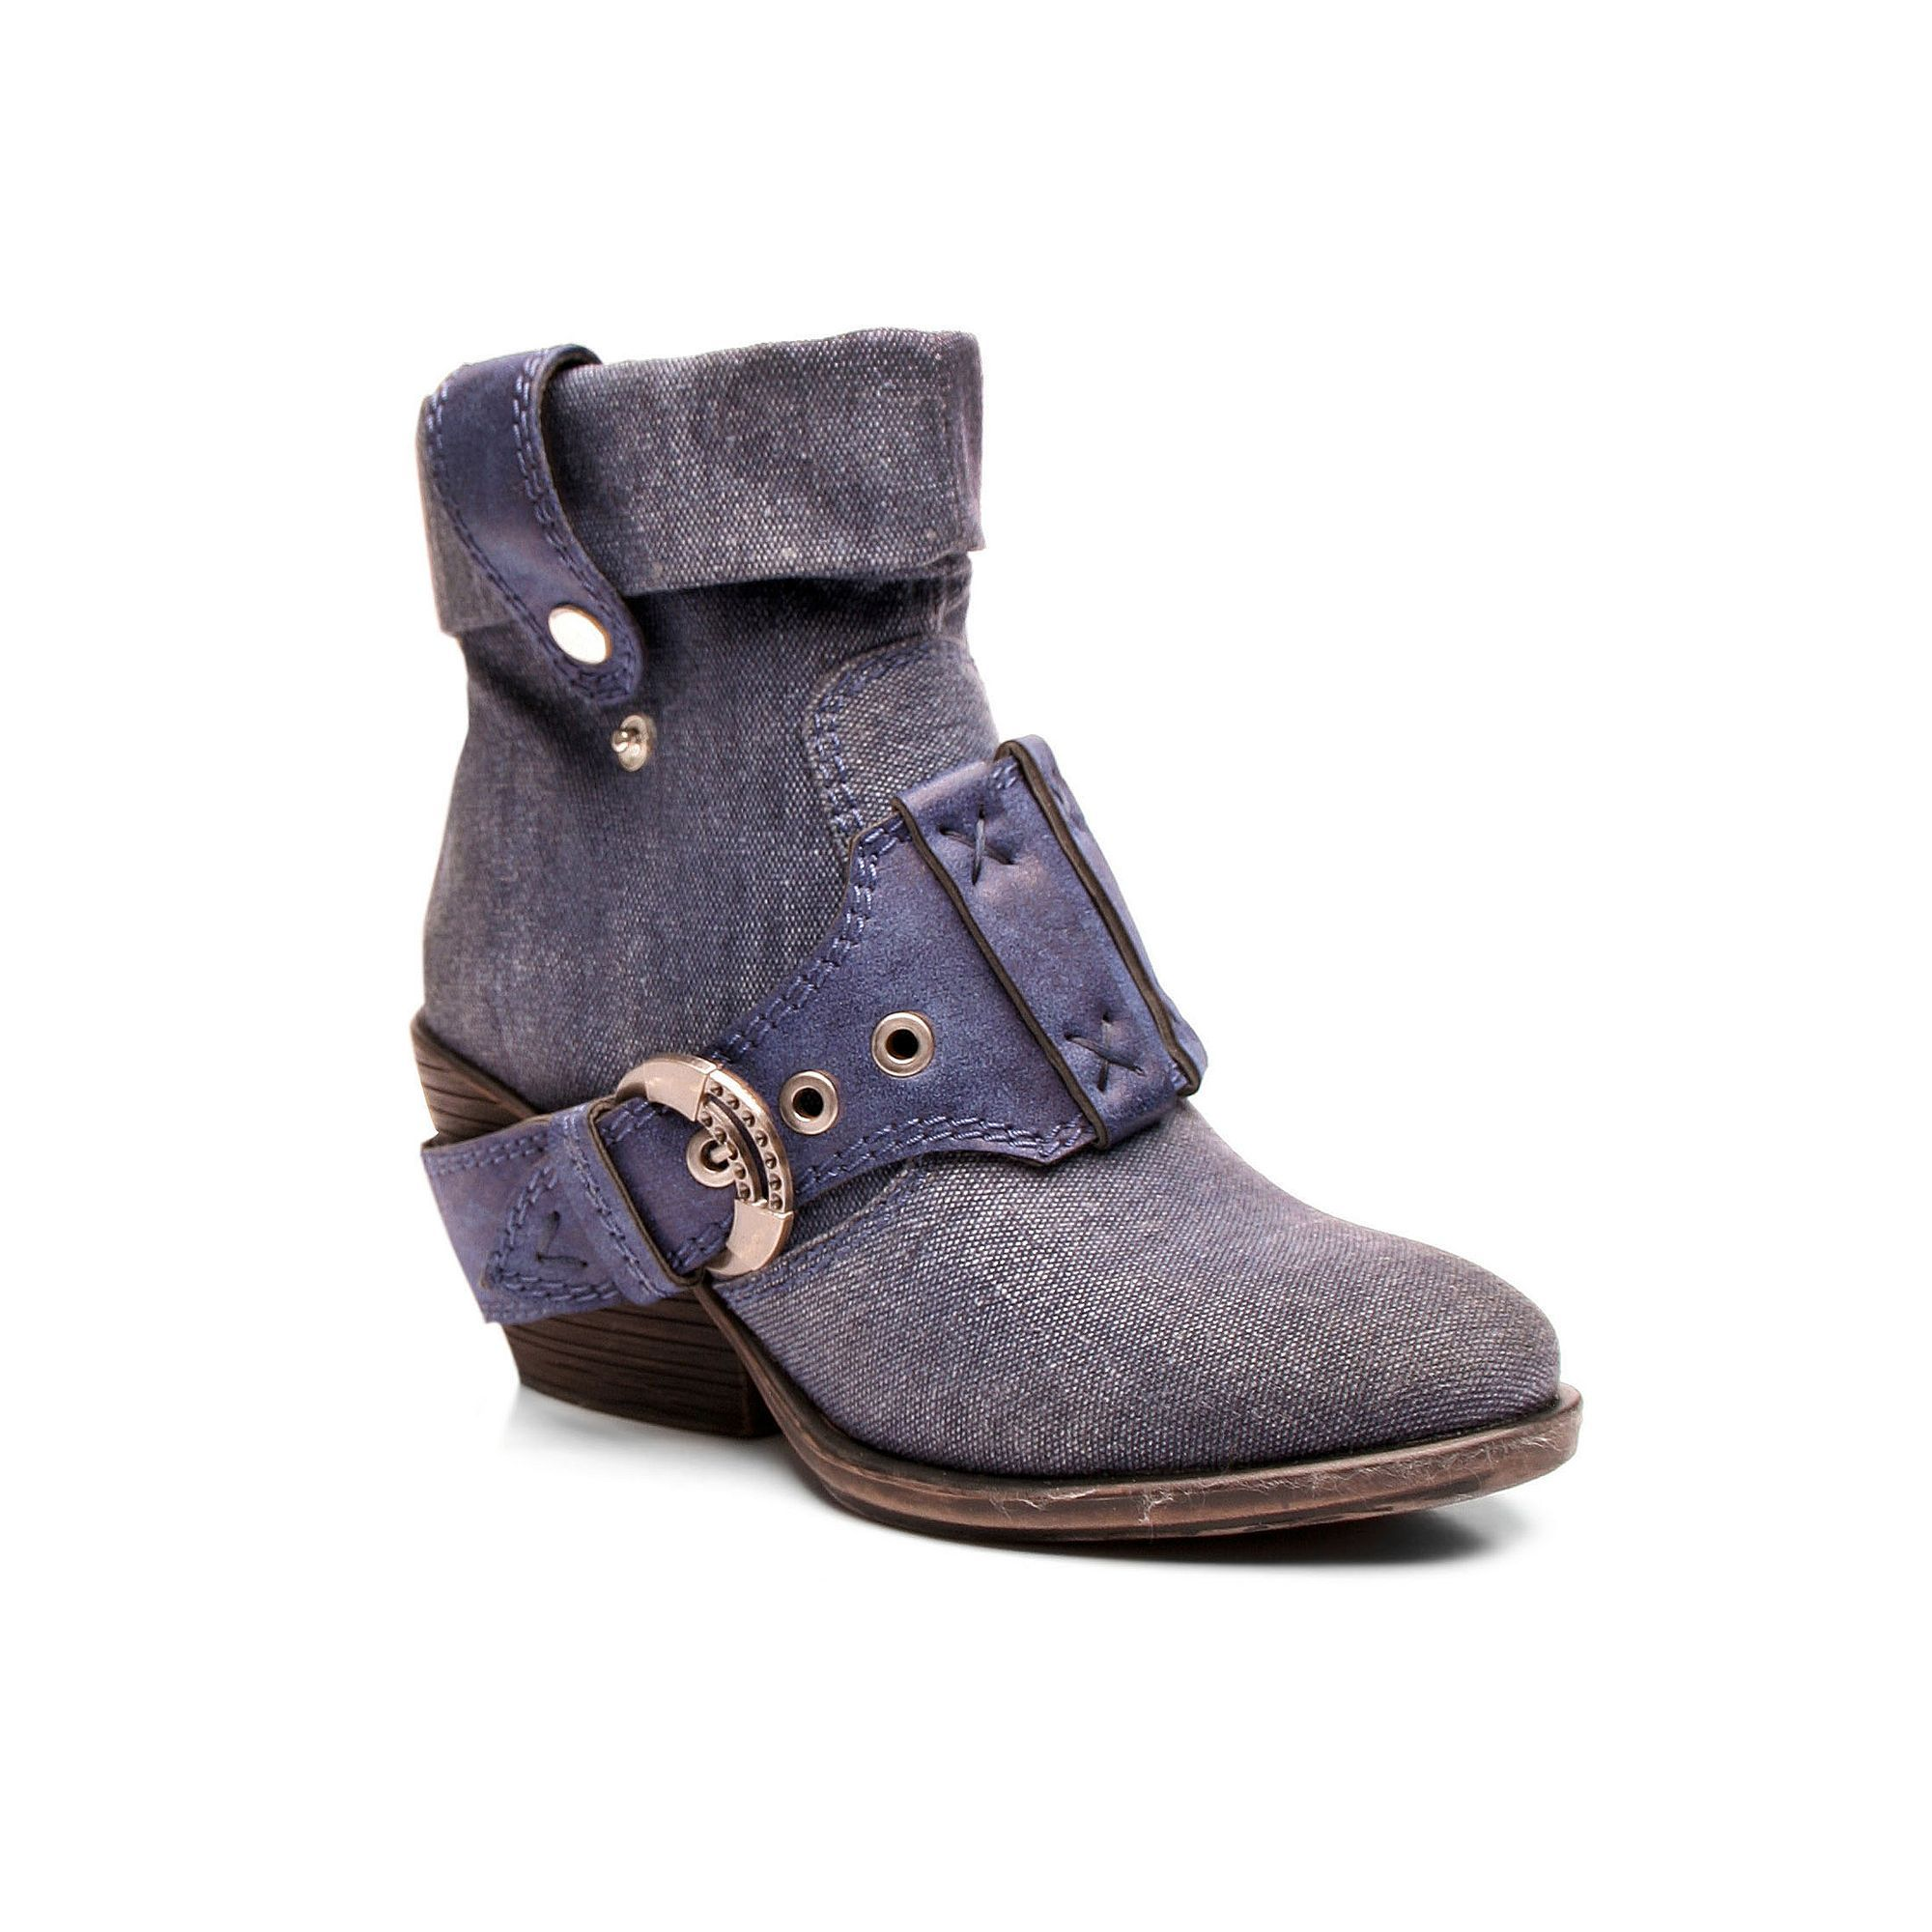 2 Lips Too Too Trixie Women's Wedge Ankle Boots, Teens, Size: 10,